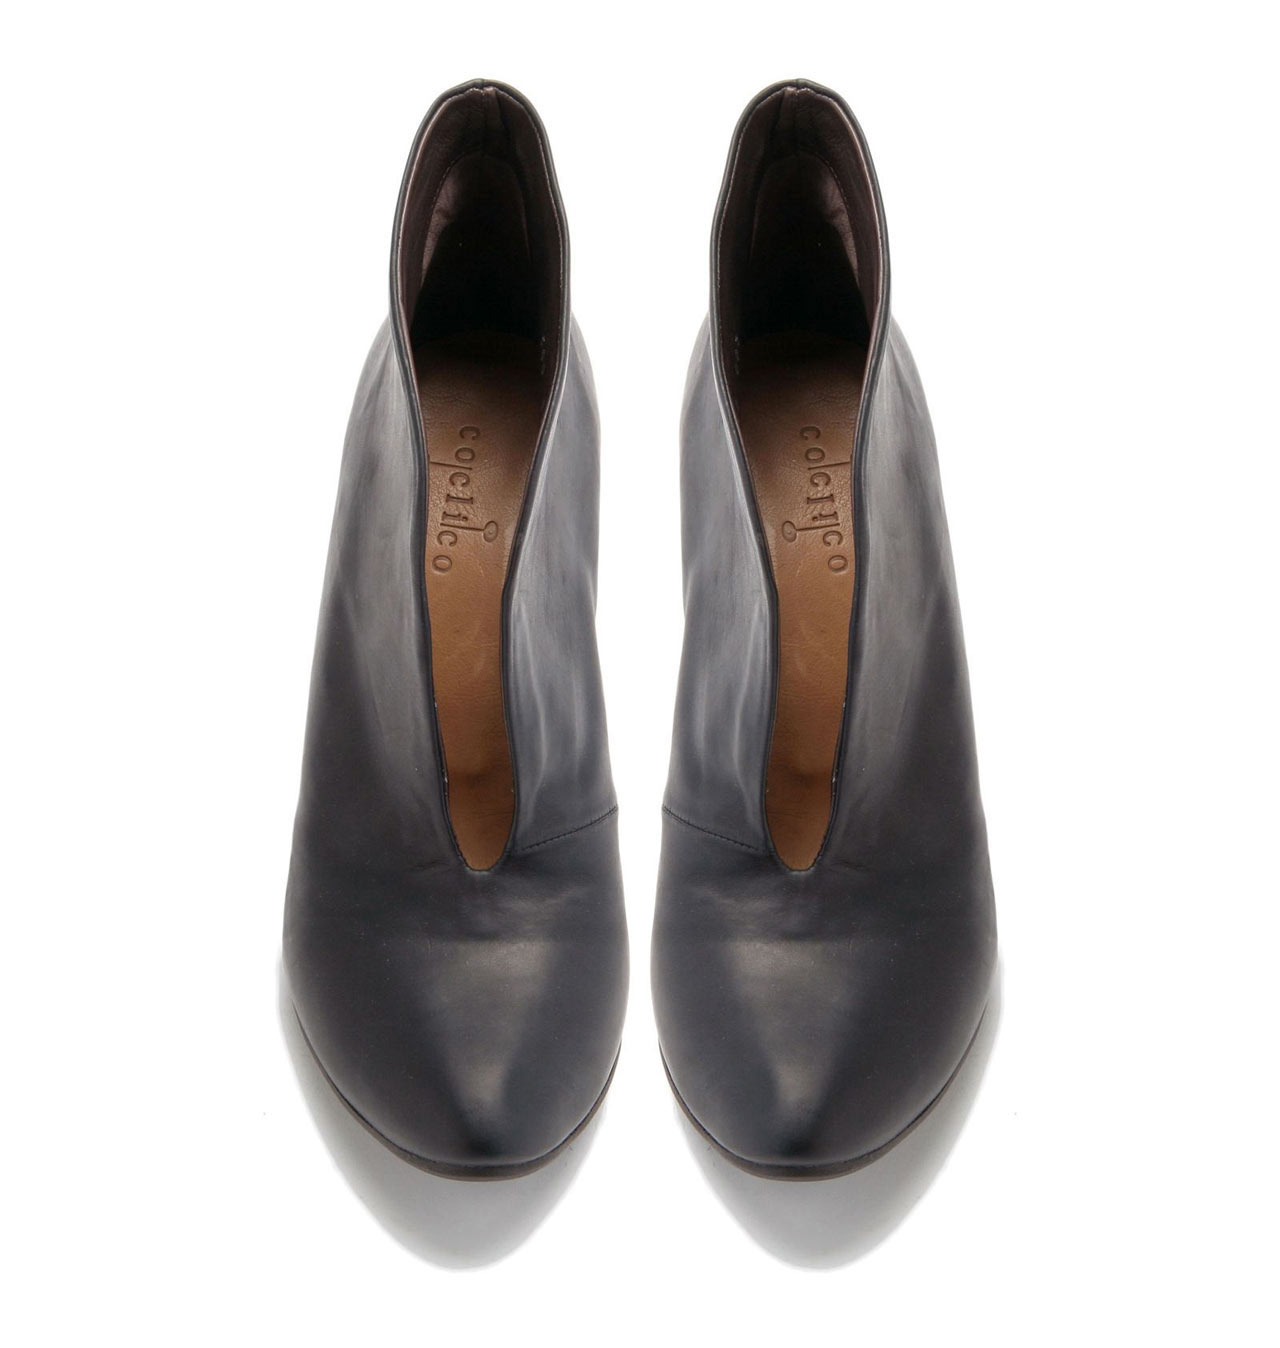 High Quality Style on Your Toes from Coclico